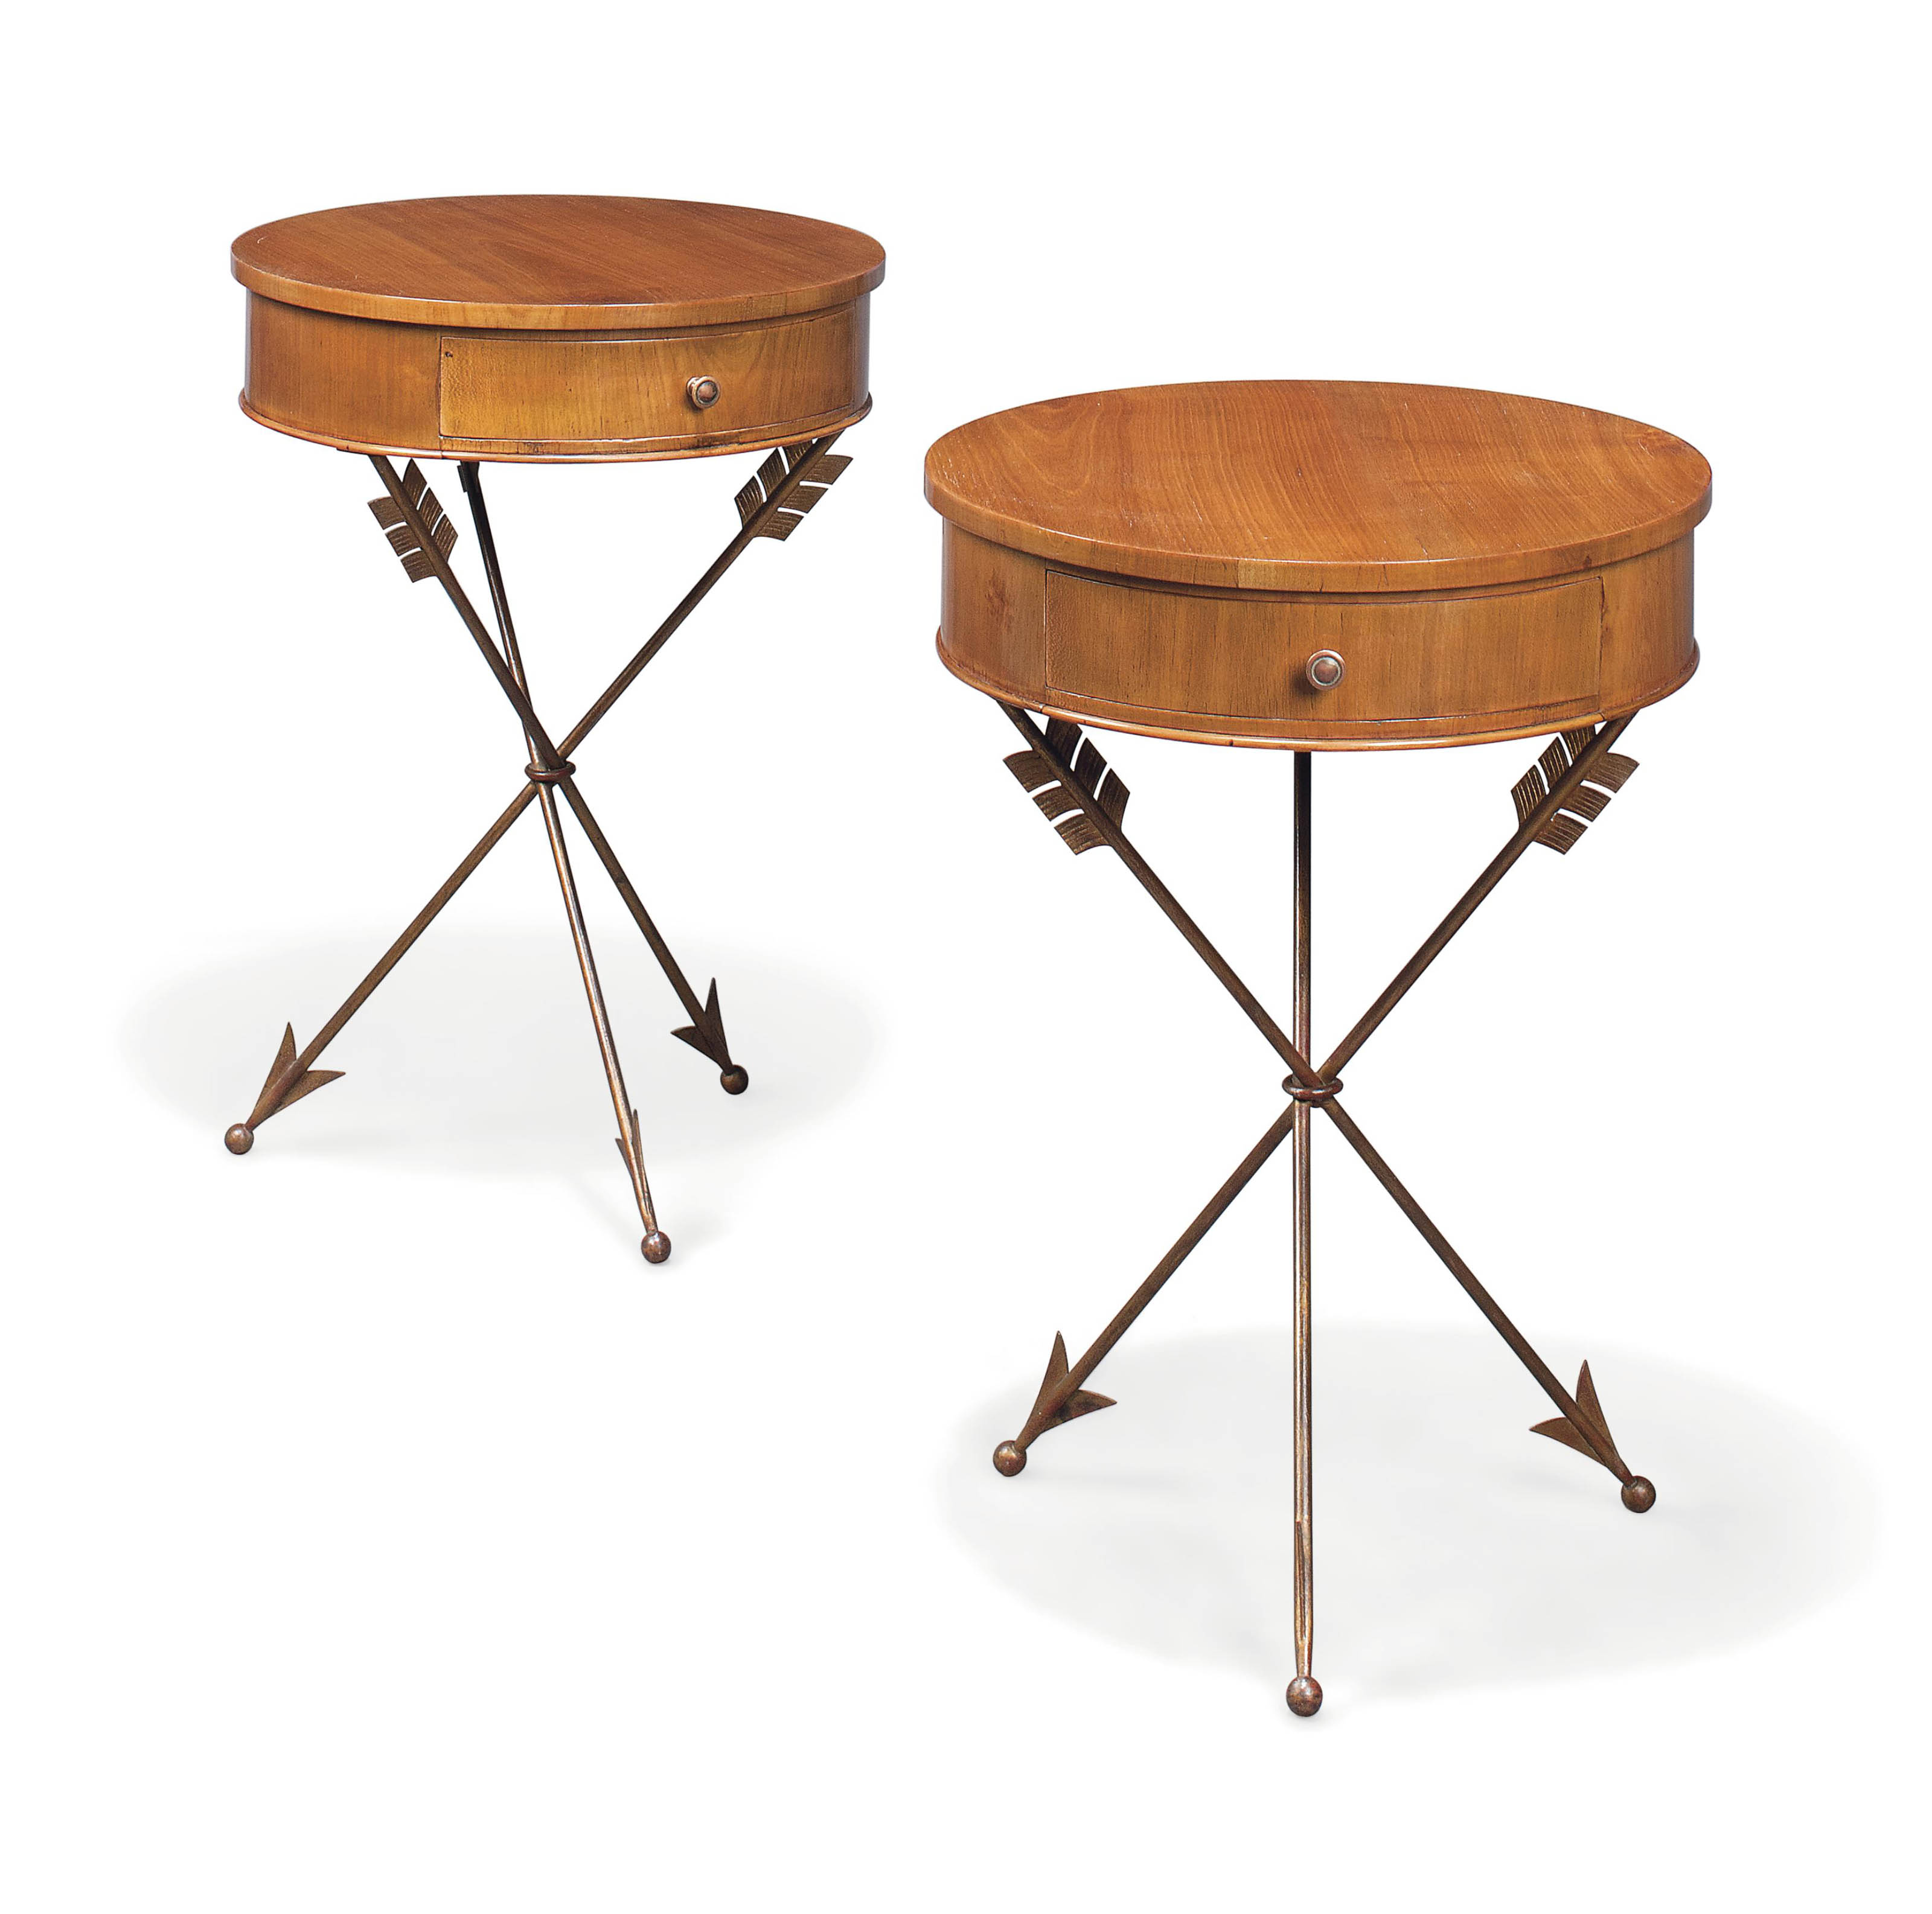 A PAIR OF OCCACSIONAL TABLES I